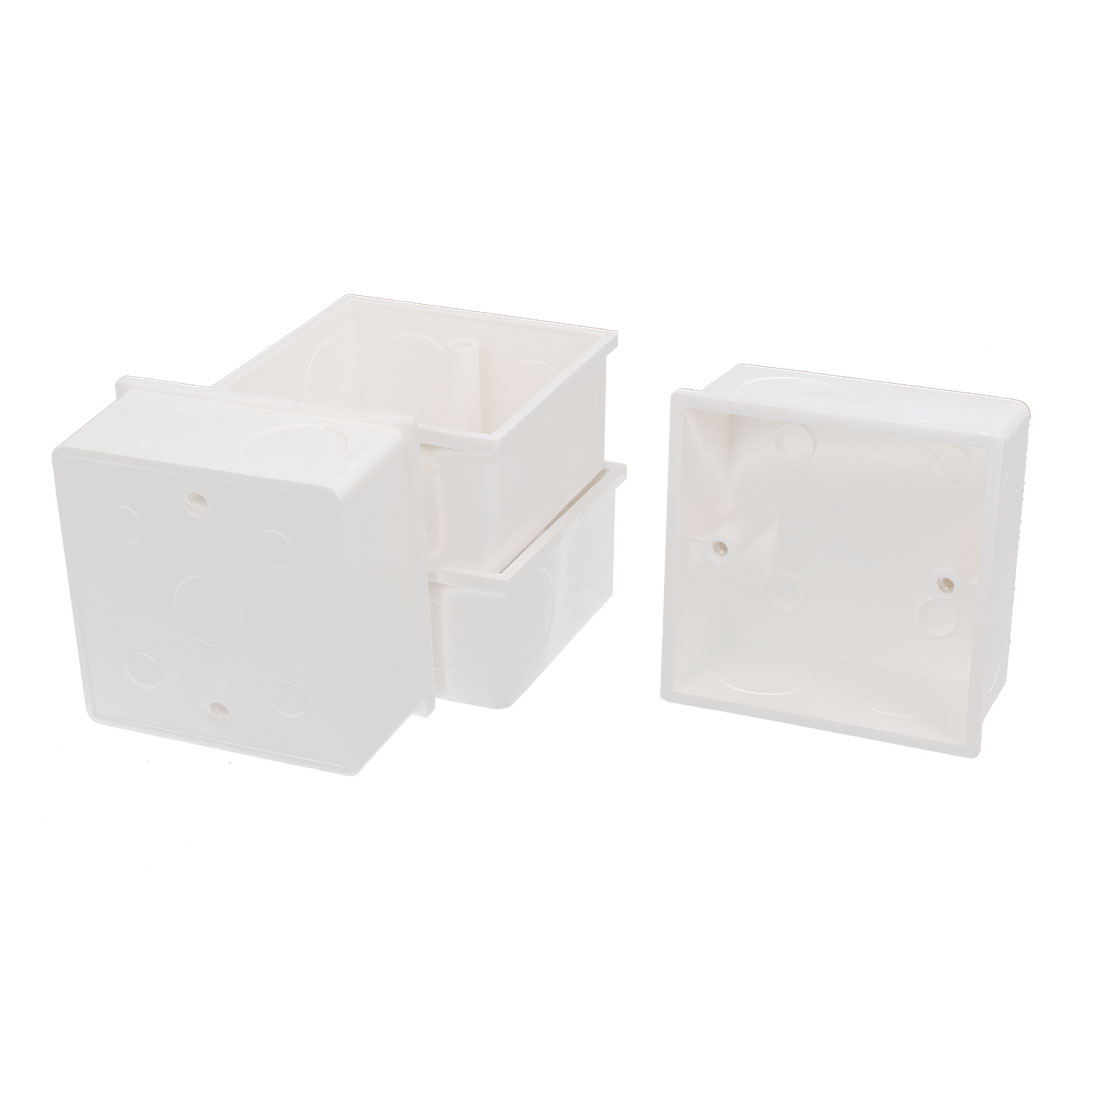 4 Pcs 86mmx86mmx43mm White PVC Mount Back Box for Wall Socket